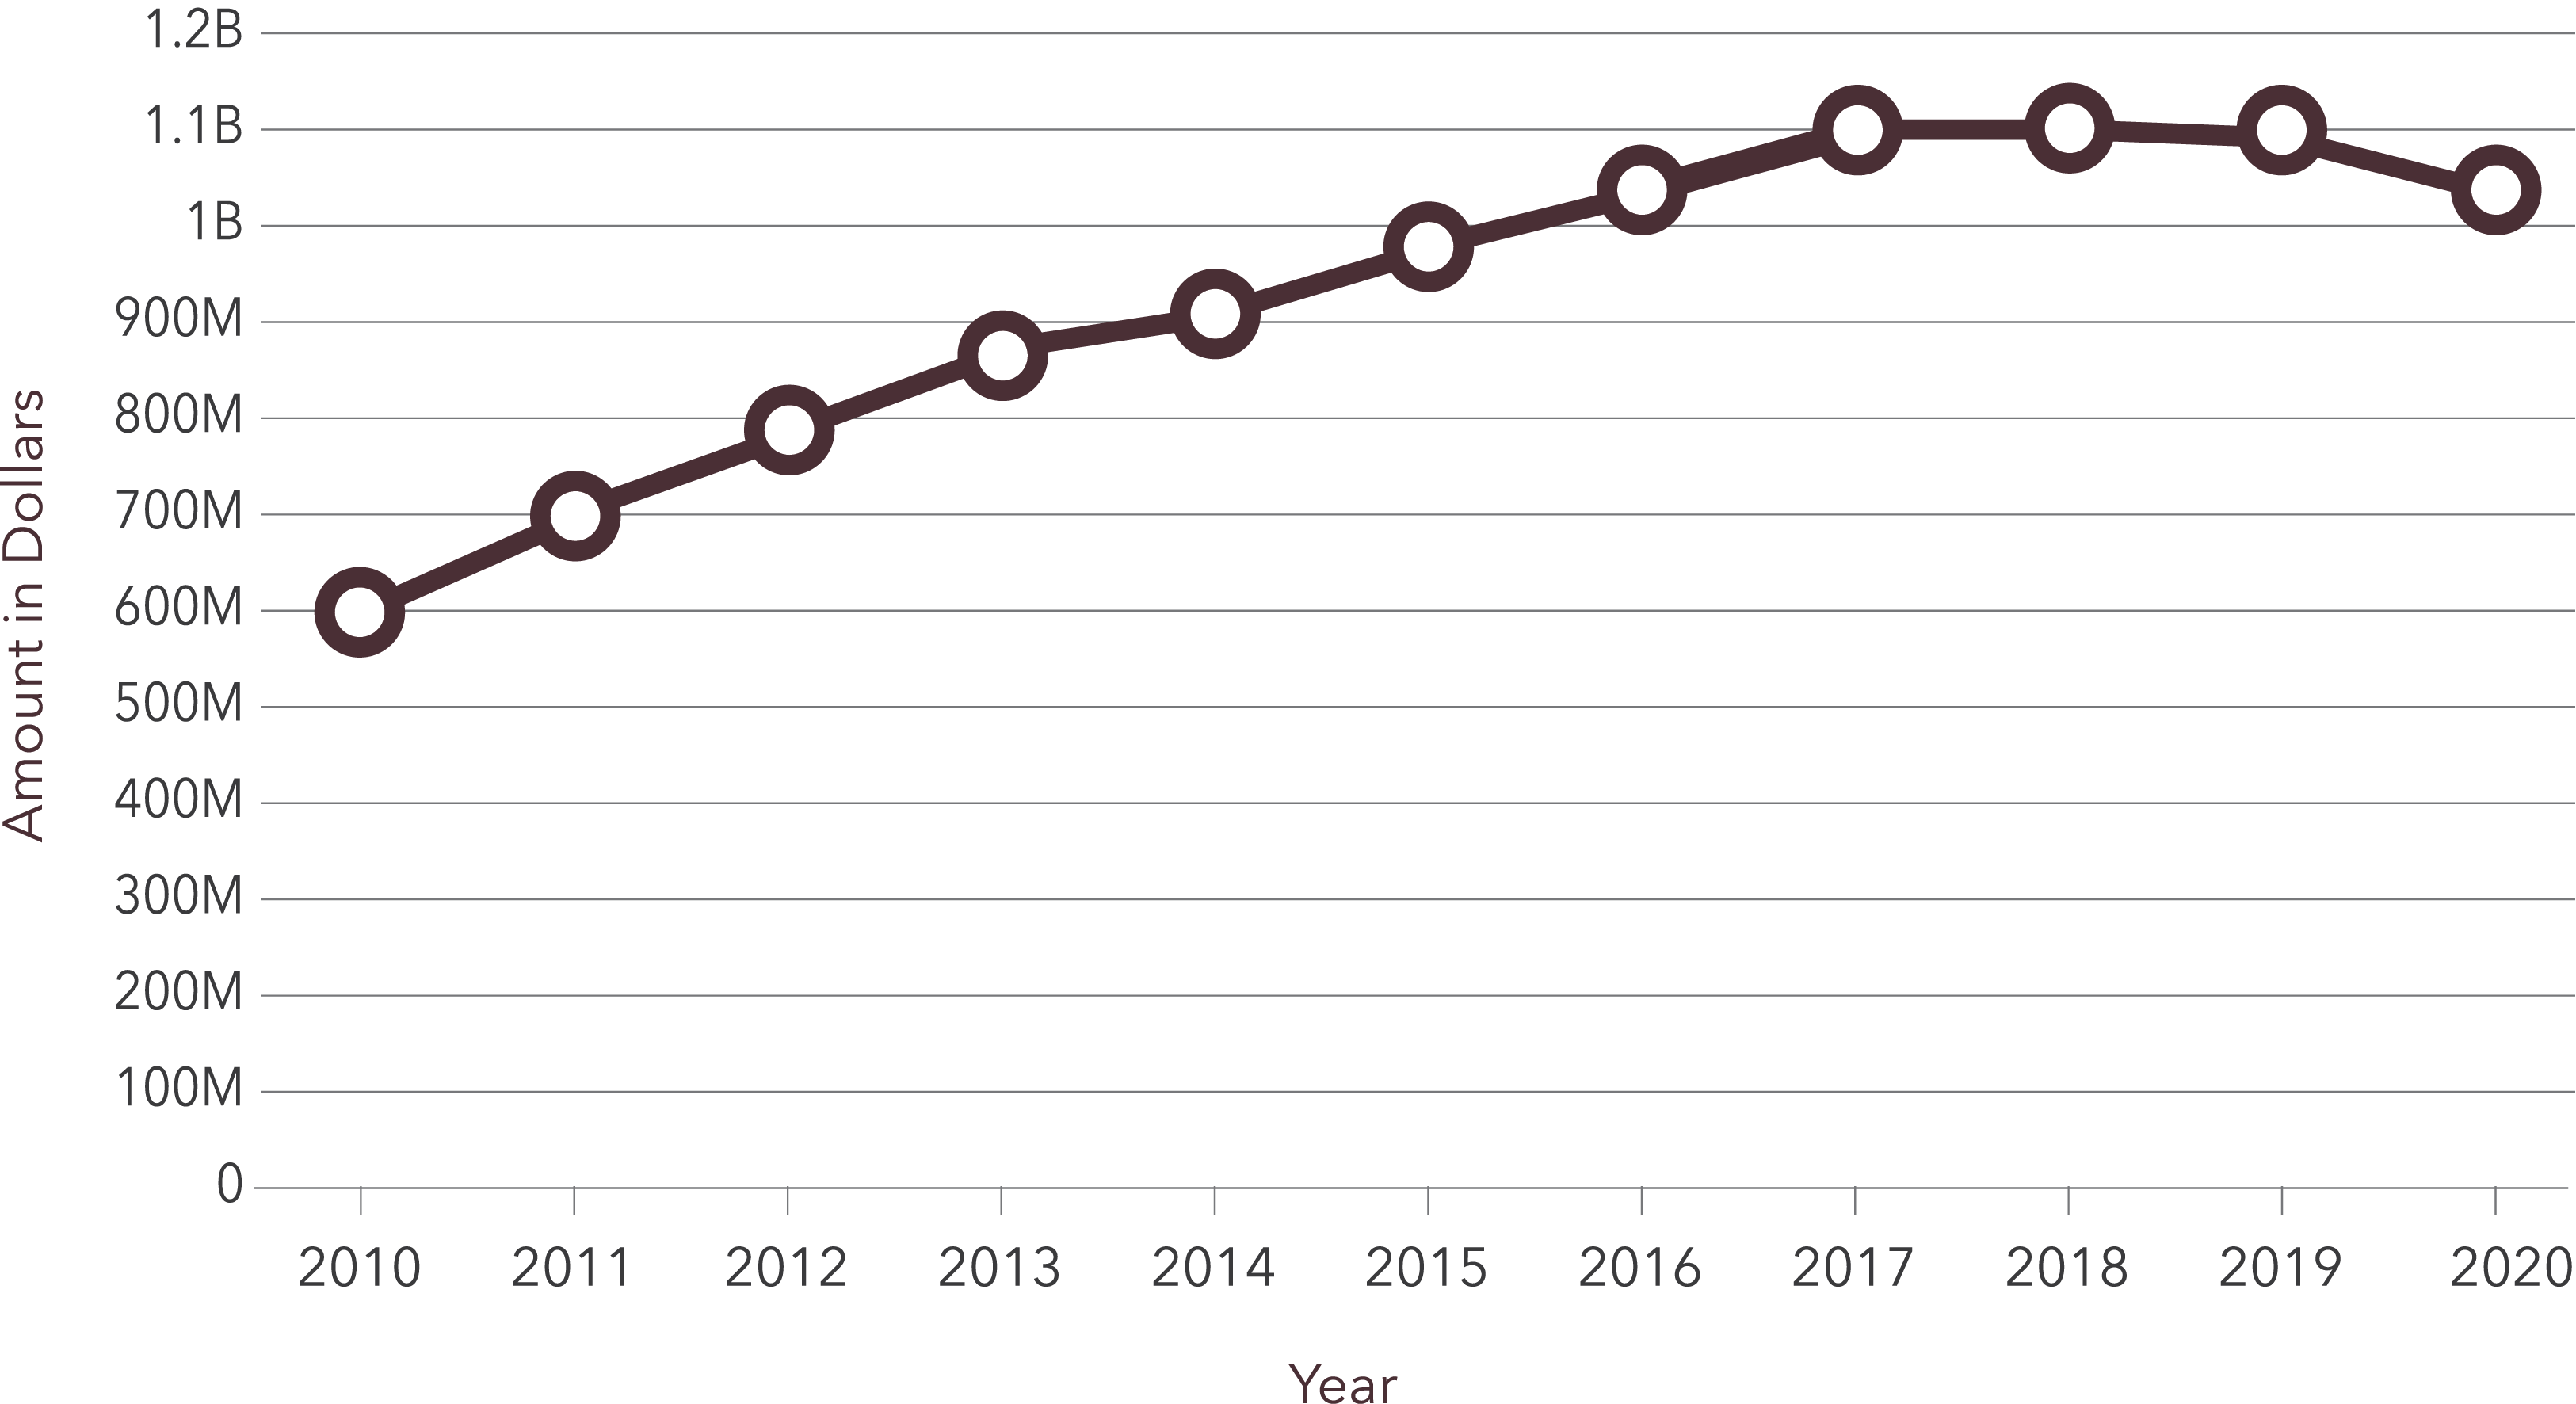 Line graph showing a growing amount of assets under management over the years 2010 to 2020. Starting at $600 Million in 2010 and growing to just over $1 Billion in 2020.